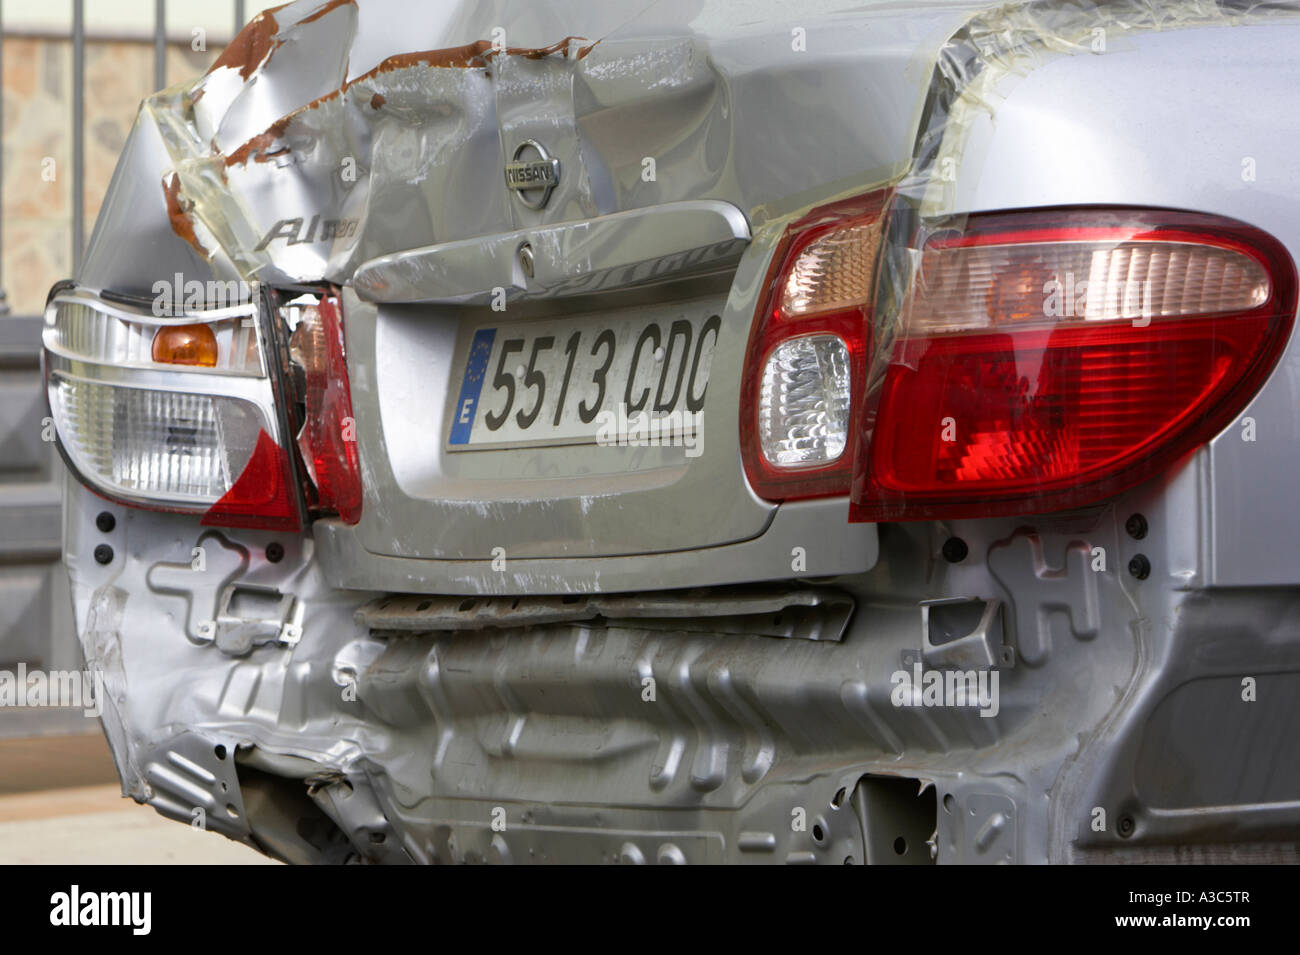 How To Cover Collision Damage On Car